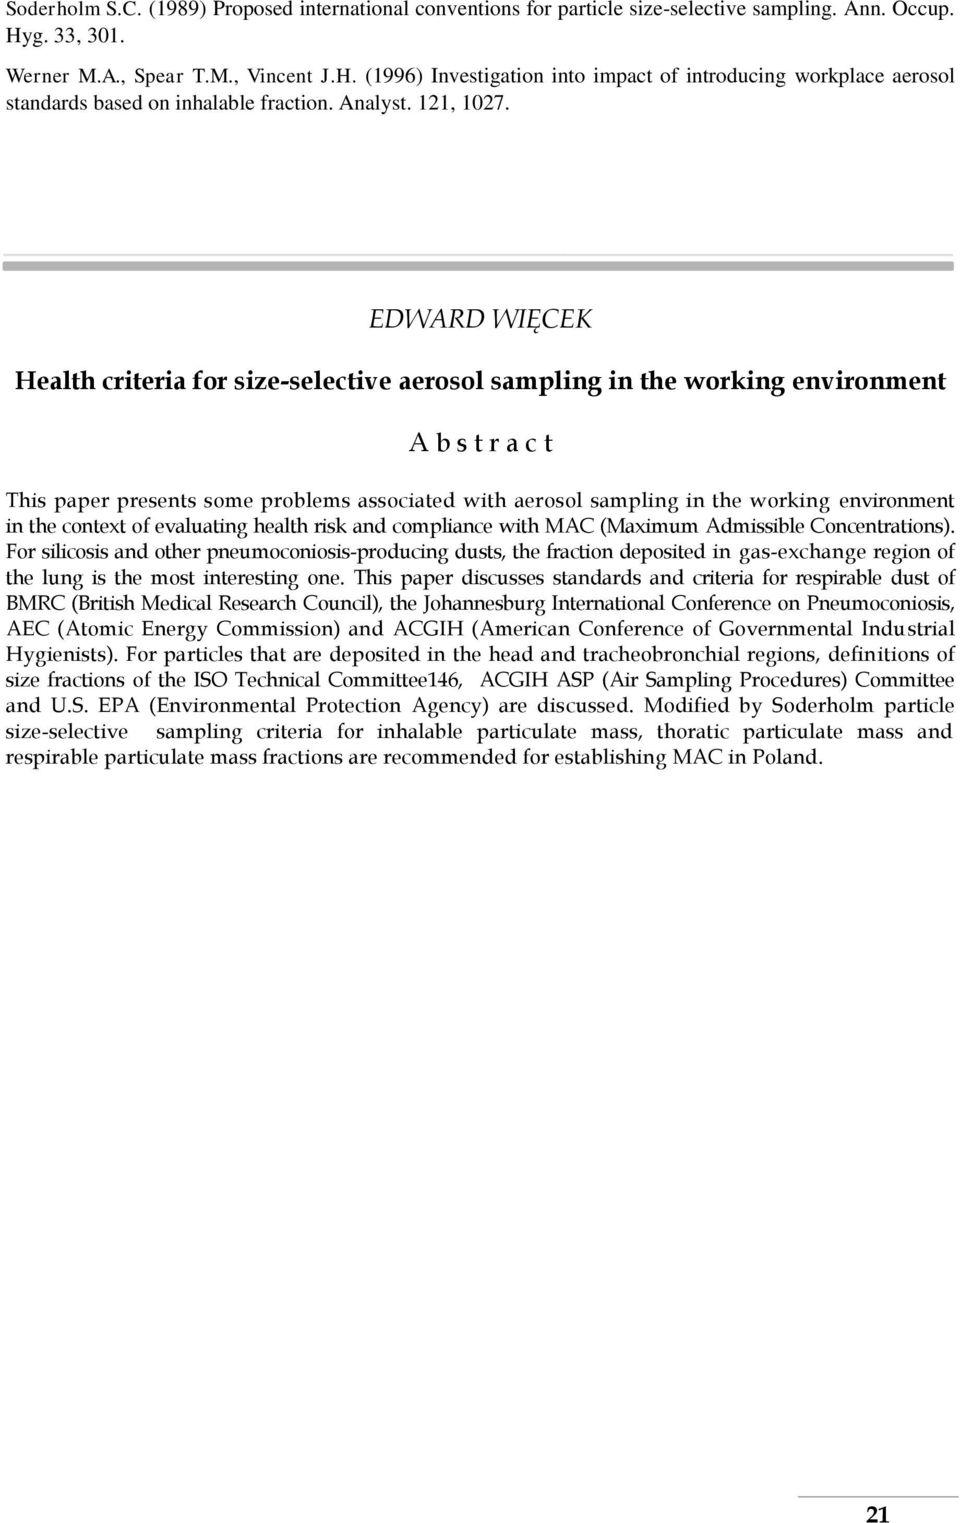 EDWARD WIĘCEK Health criteria for size-selective aerosol sampling in the working environment A b s t r a c t This paper presents some problems associated with aerosol sampling in the working